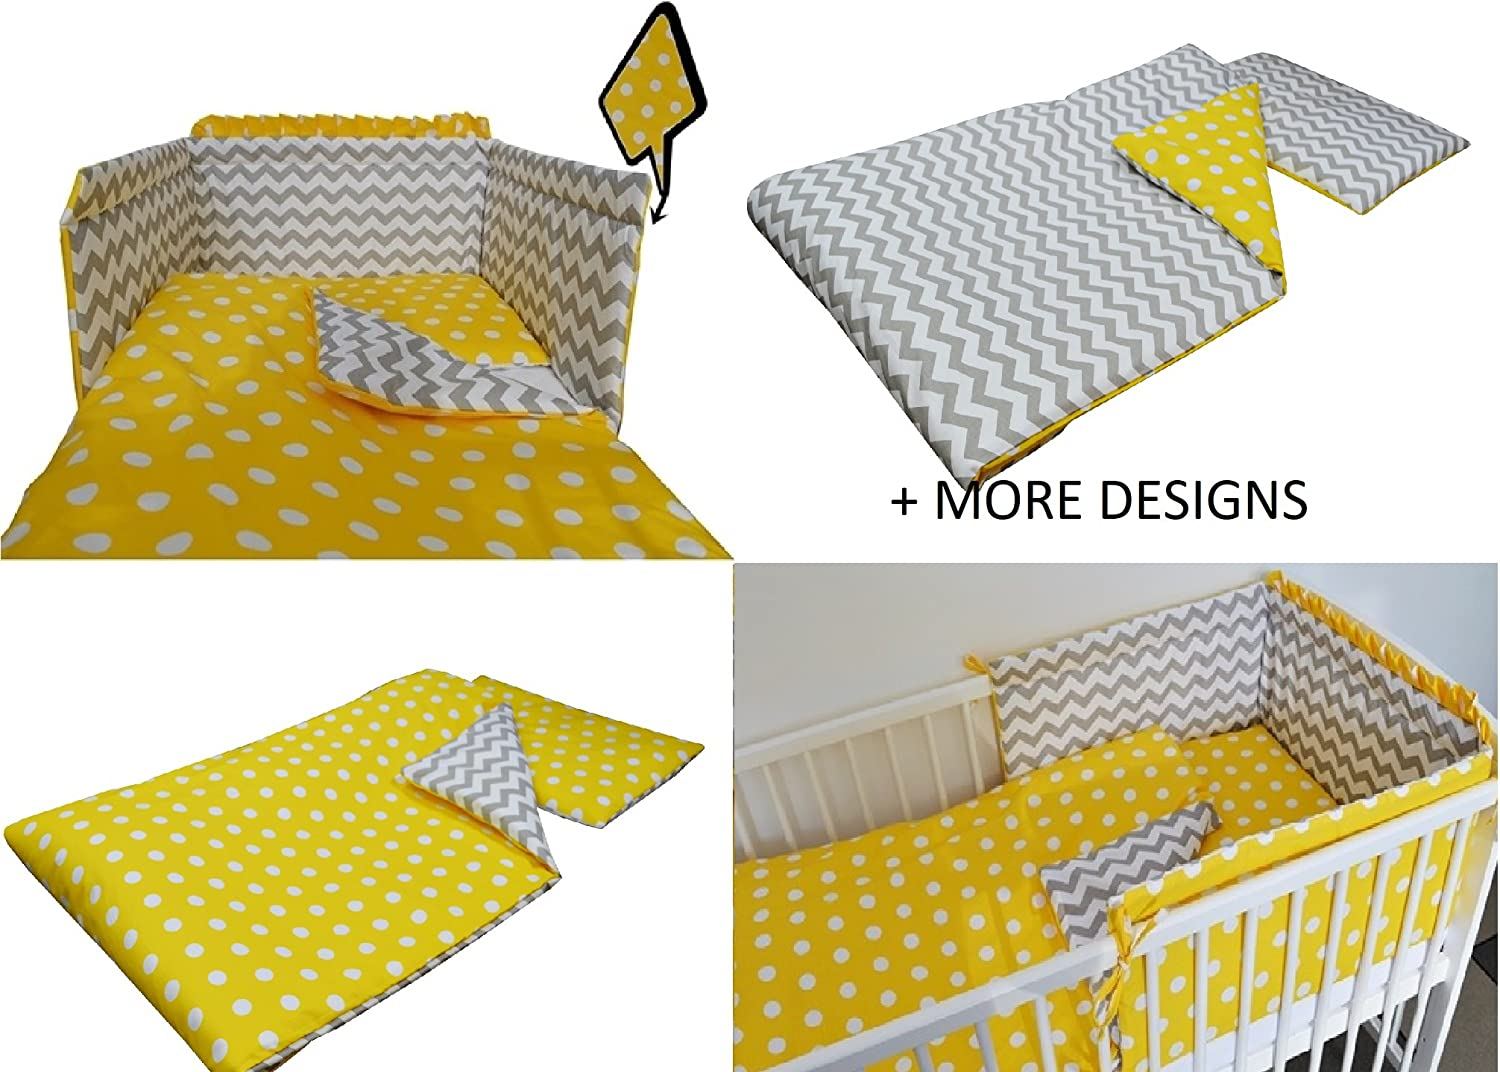 3 pc Baby Bedding Set for COT 120X60 OR COT Bed 140X70 Stars-Elephant- COT Bed Size 140X70, Printed Cable-Knit Wool Effect Design